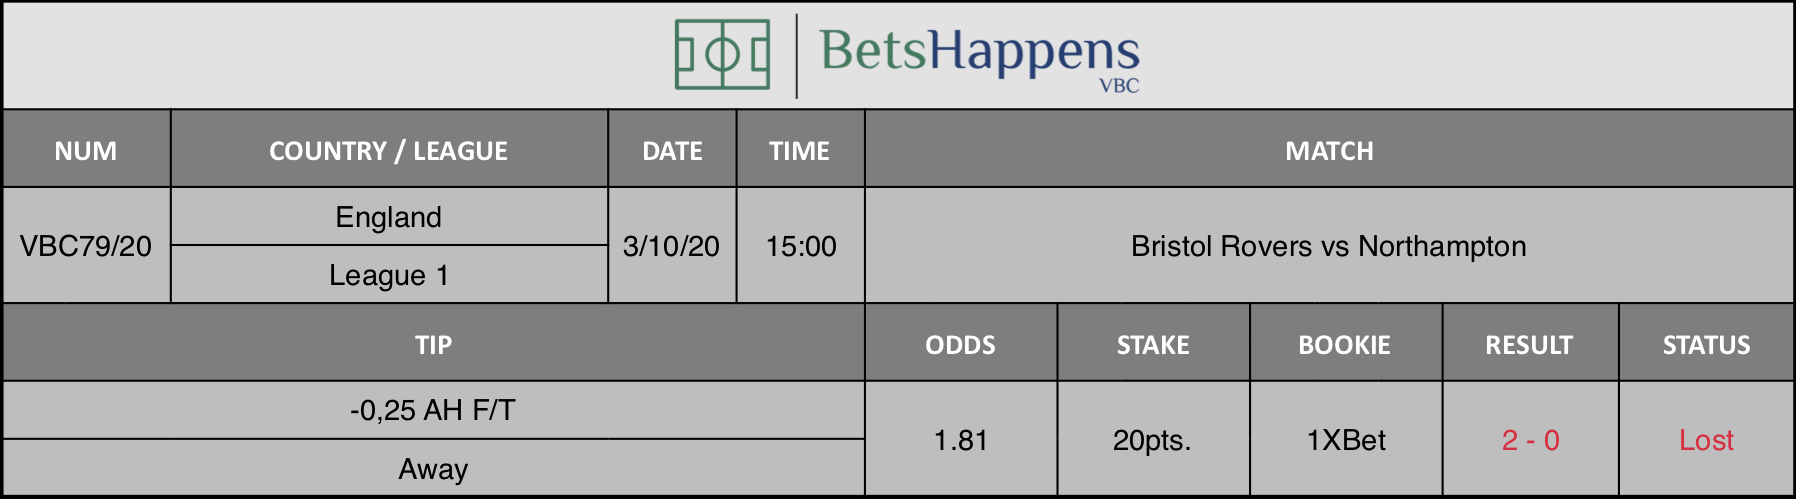 Results of our advice for the Bristol Rovers vs Northampton match in which -0.25 AH F / T Away is recommended.